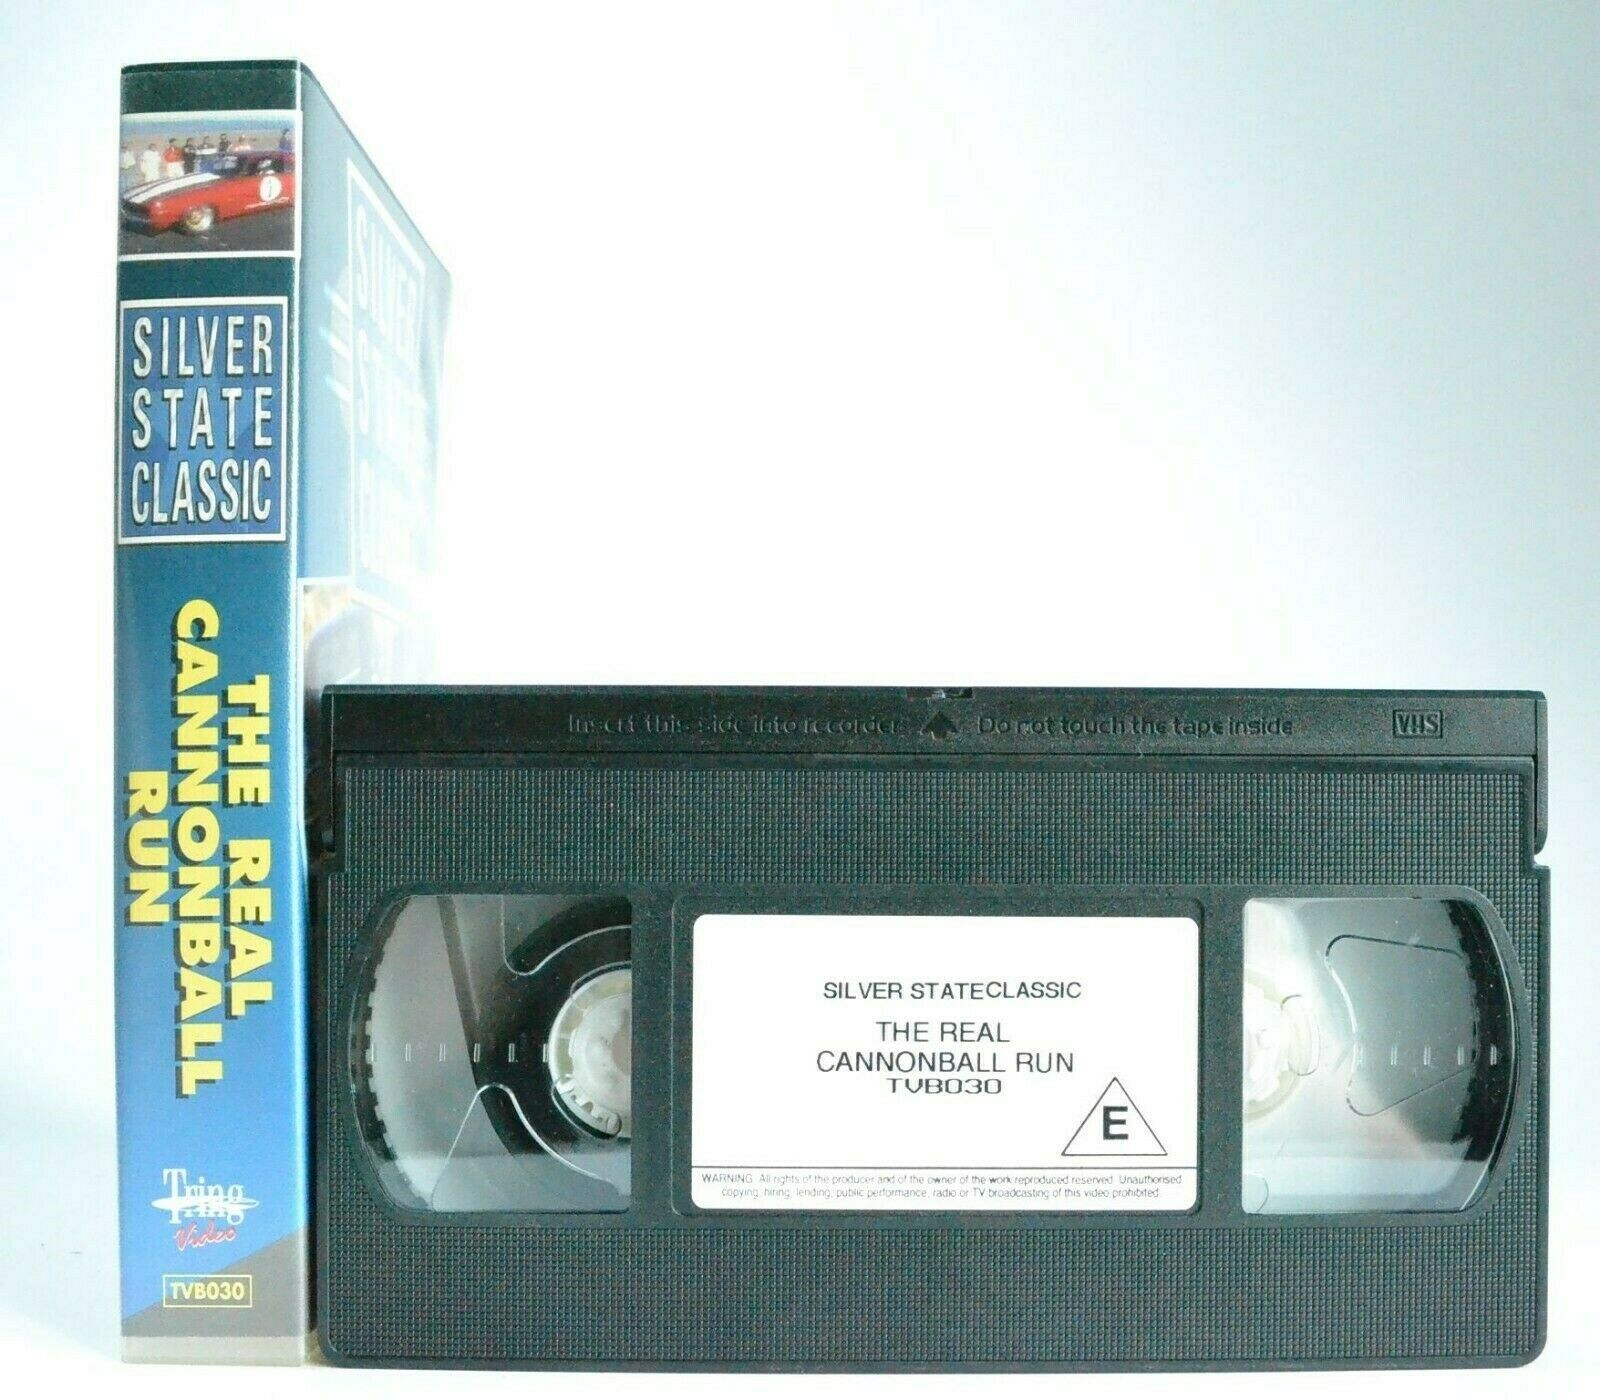 Silver State Classic: The Real Cannonball Run - Fastest Open Road Race - Pal VHS